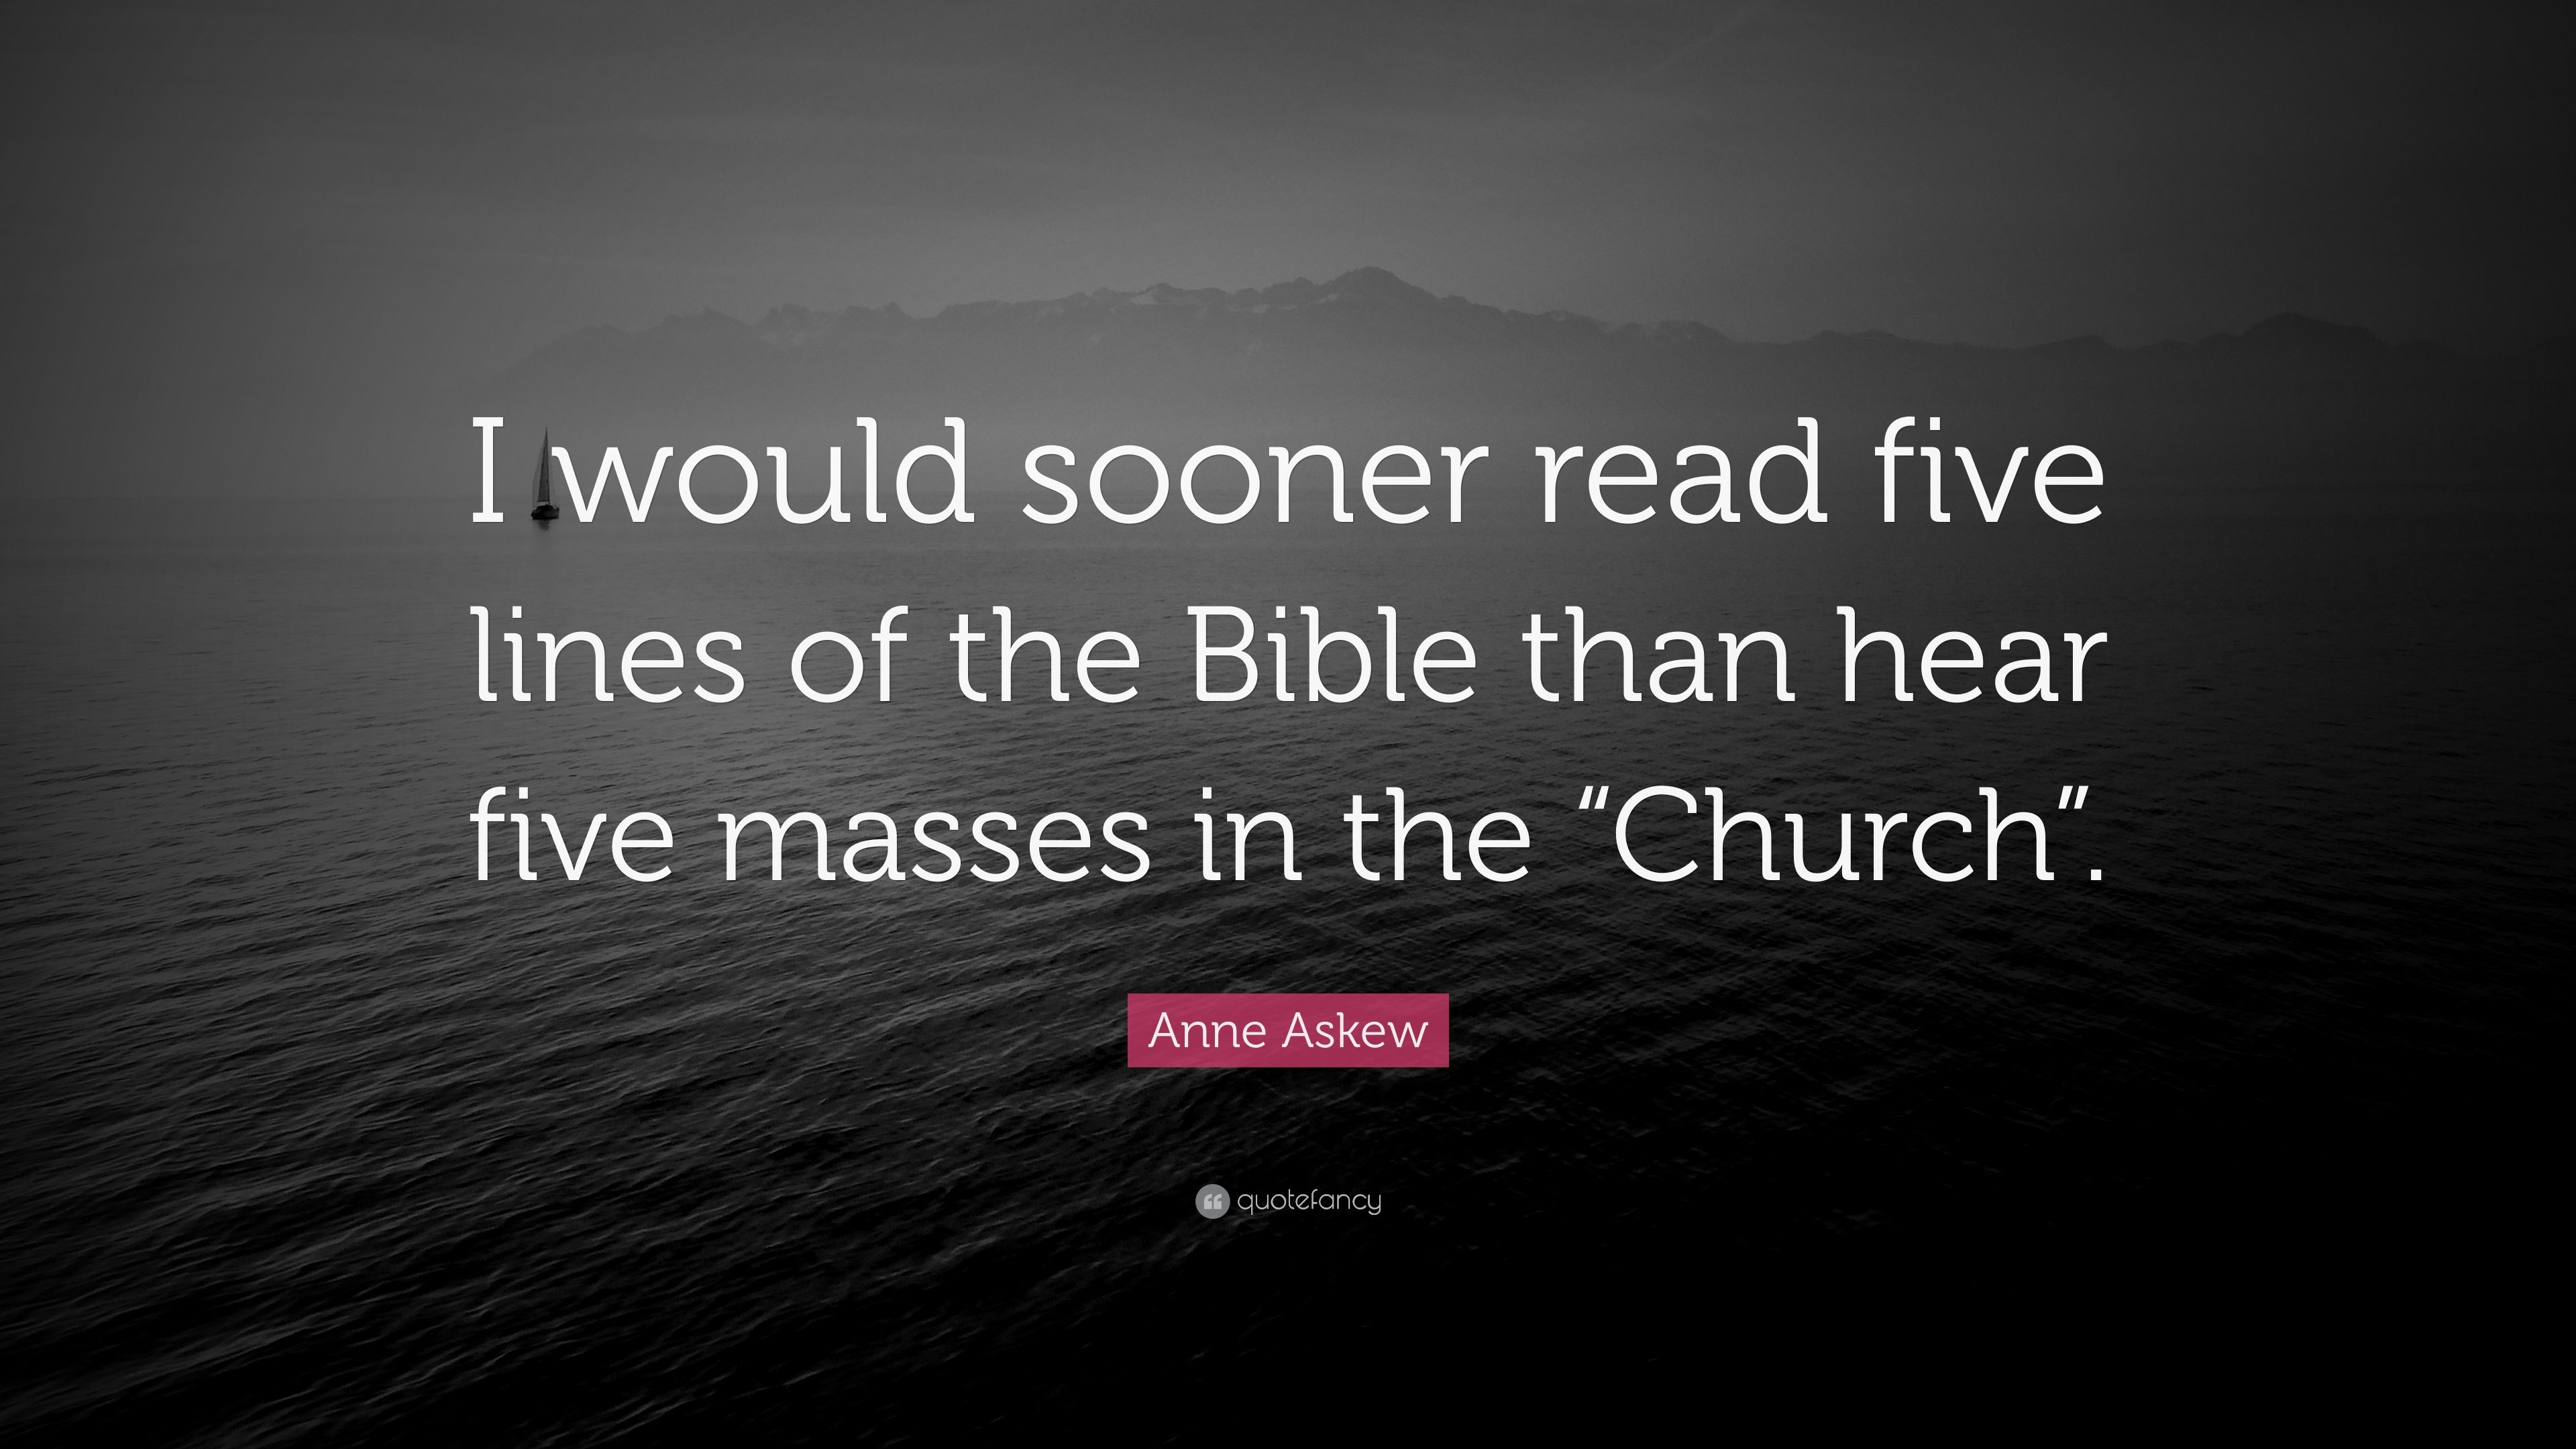 anne askew quote i would sooner read five lines of the bible than